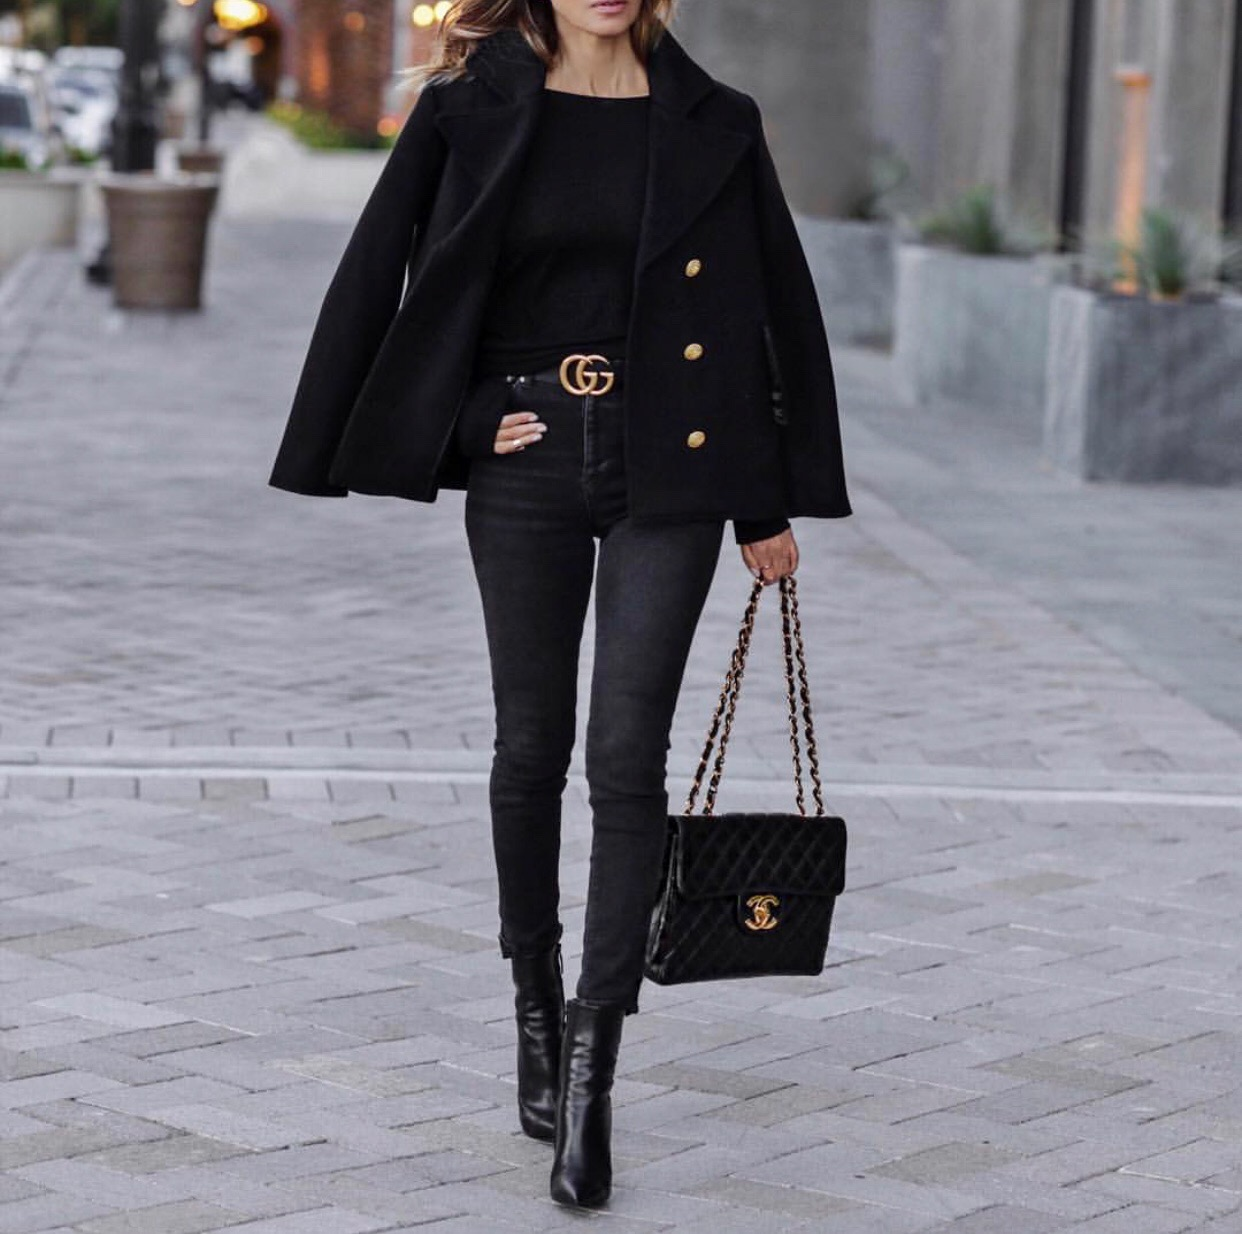 date night outfit ideas, black skinny jeans, black boots, black coat // lolariostyle.com